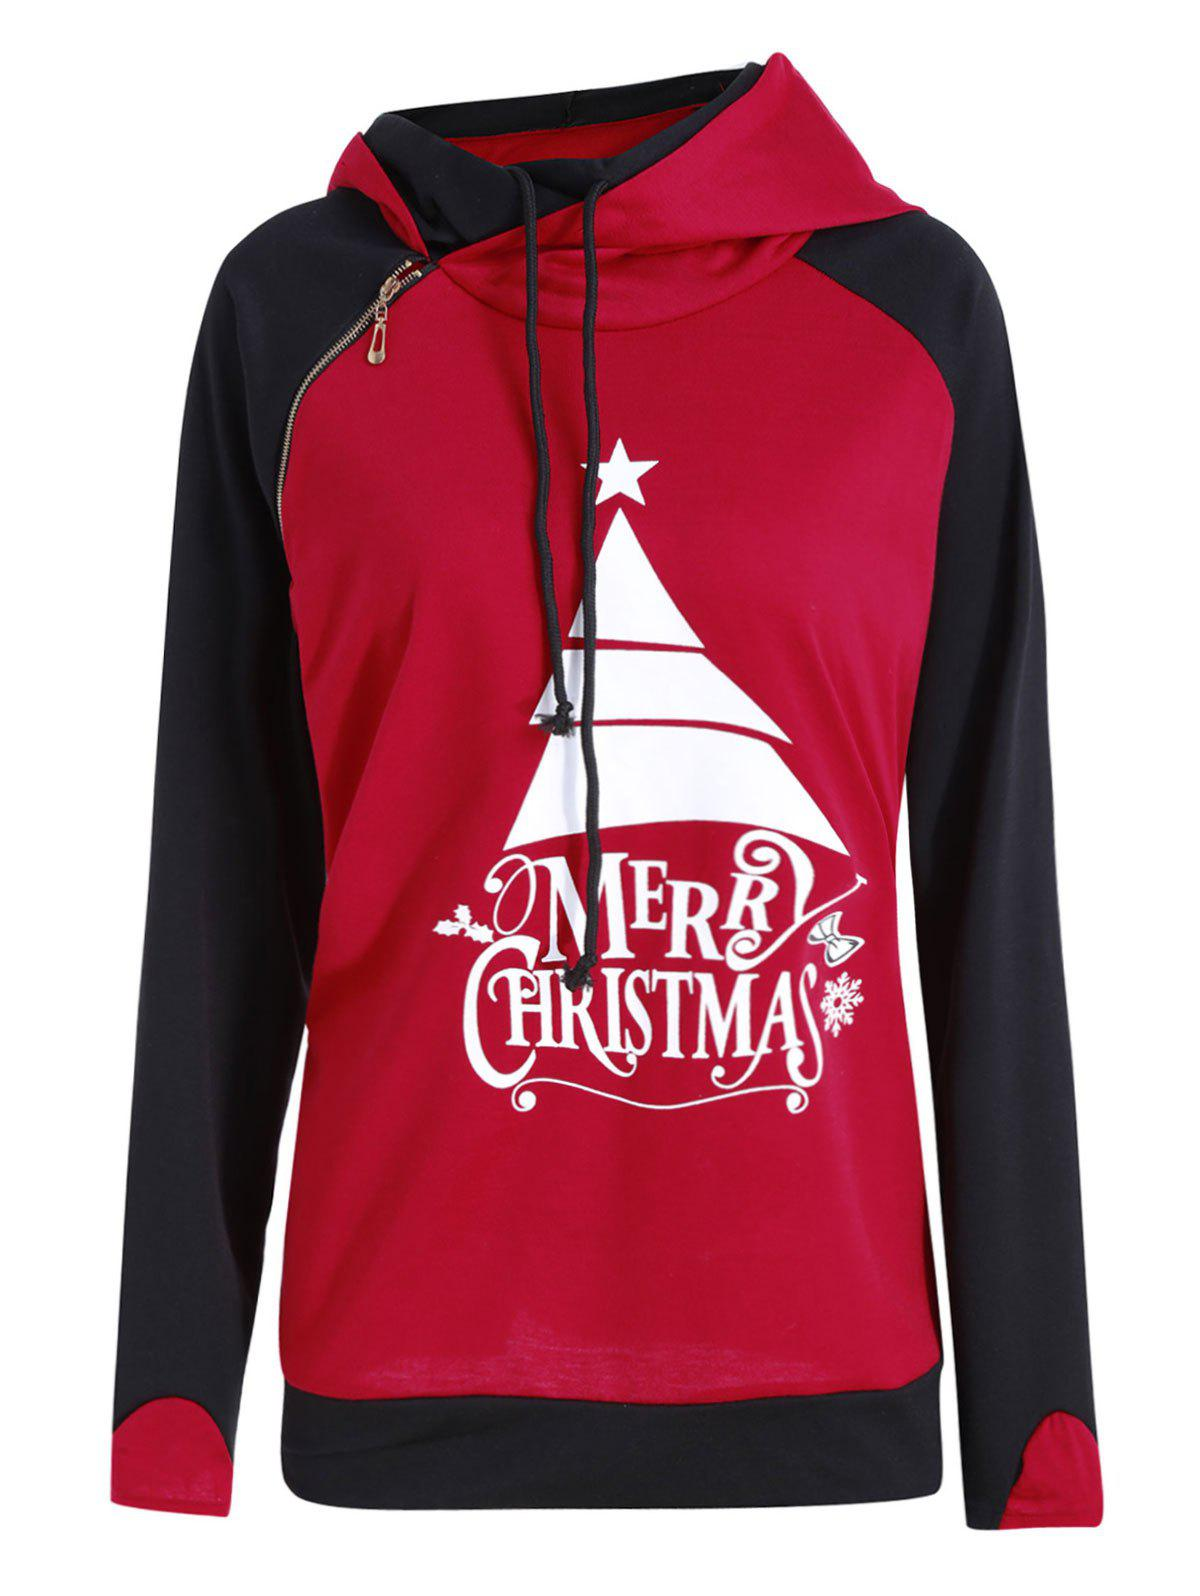 Plus Size  Oblique Zipper Hit Color Merry Christmas HoodieWOMEN<br><br>Size: 2XL; Color: RED; Material: Cotton Blend,Polyester; Shirt Length: Regular; Sleeve Length: Full; Style: Fashion; Pattern Style: Letter,Plant; Season: Fall,Winter; Weight: 0.5000kg; Package Contents: 1 x Hoodie;